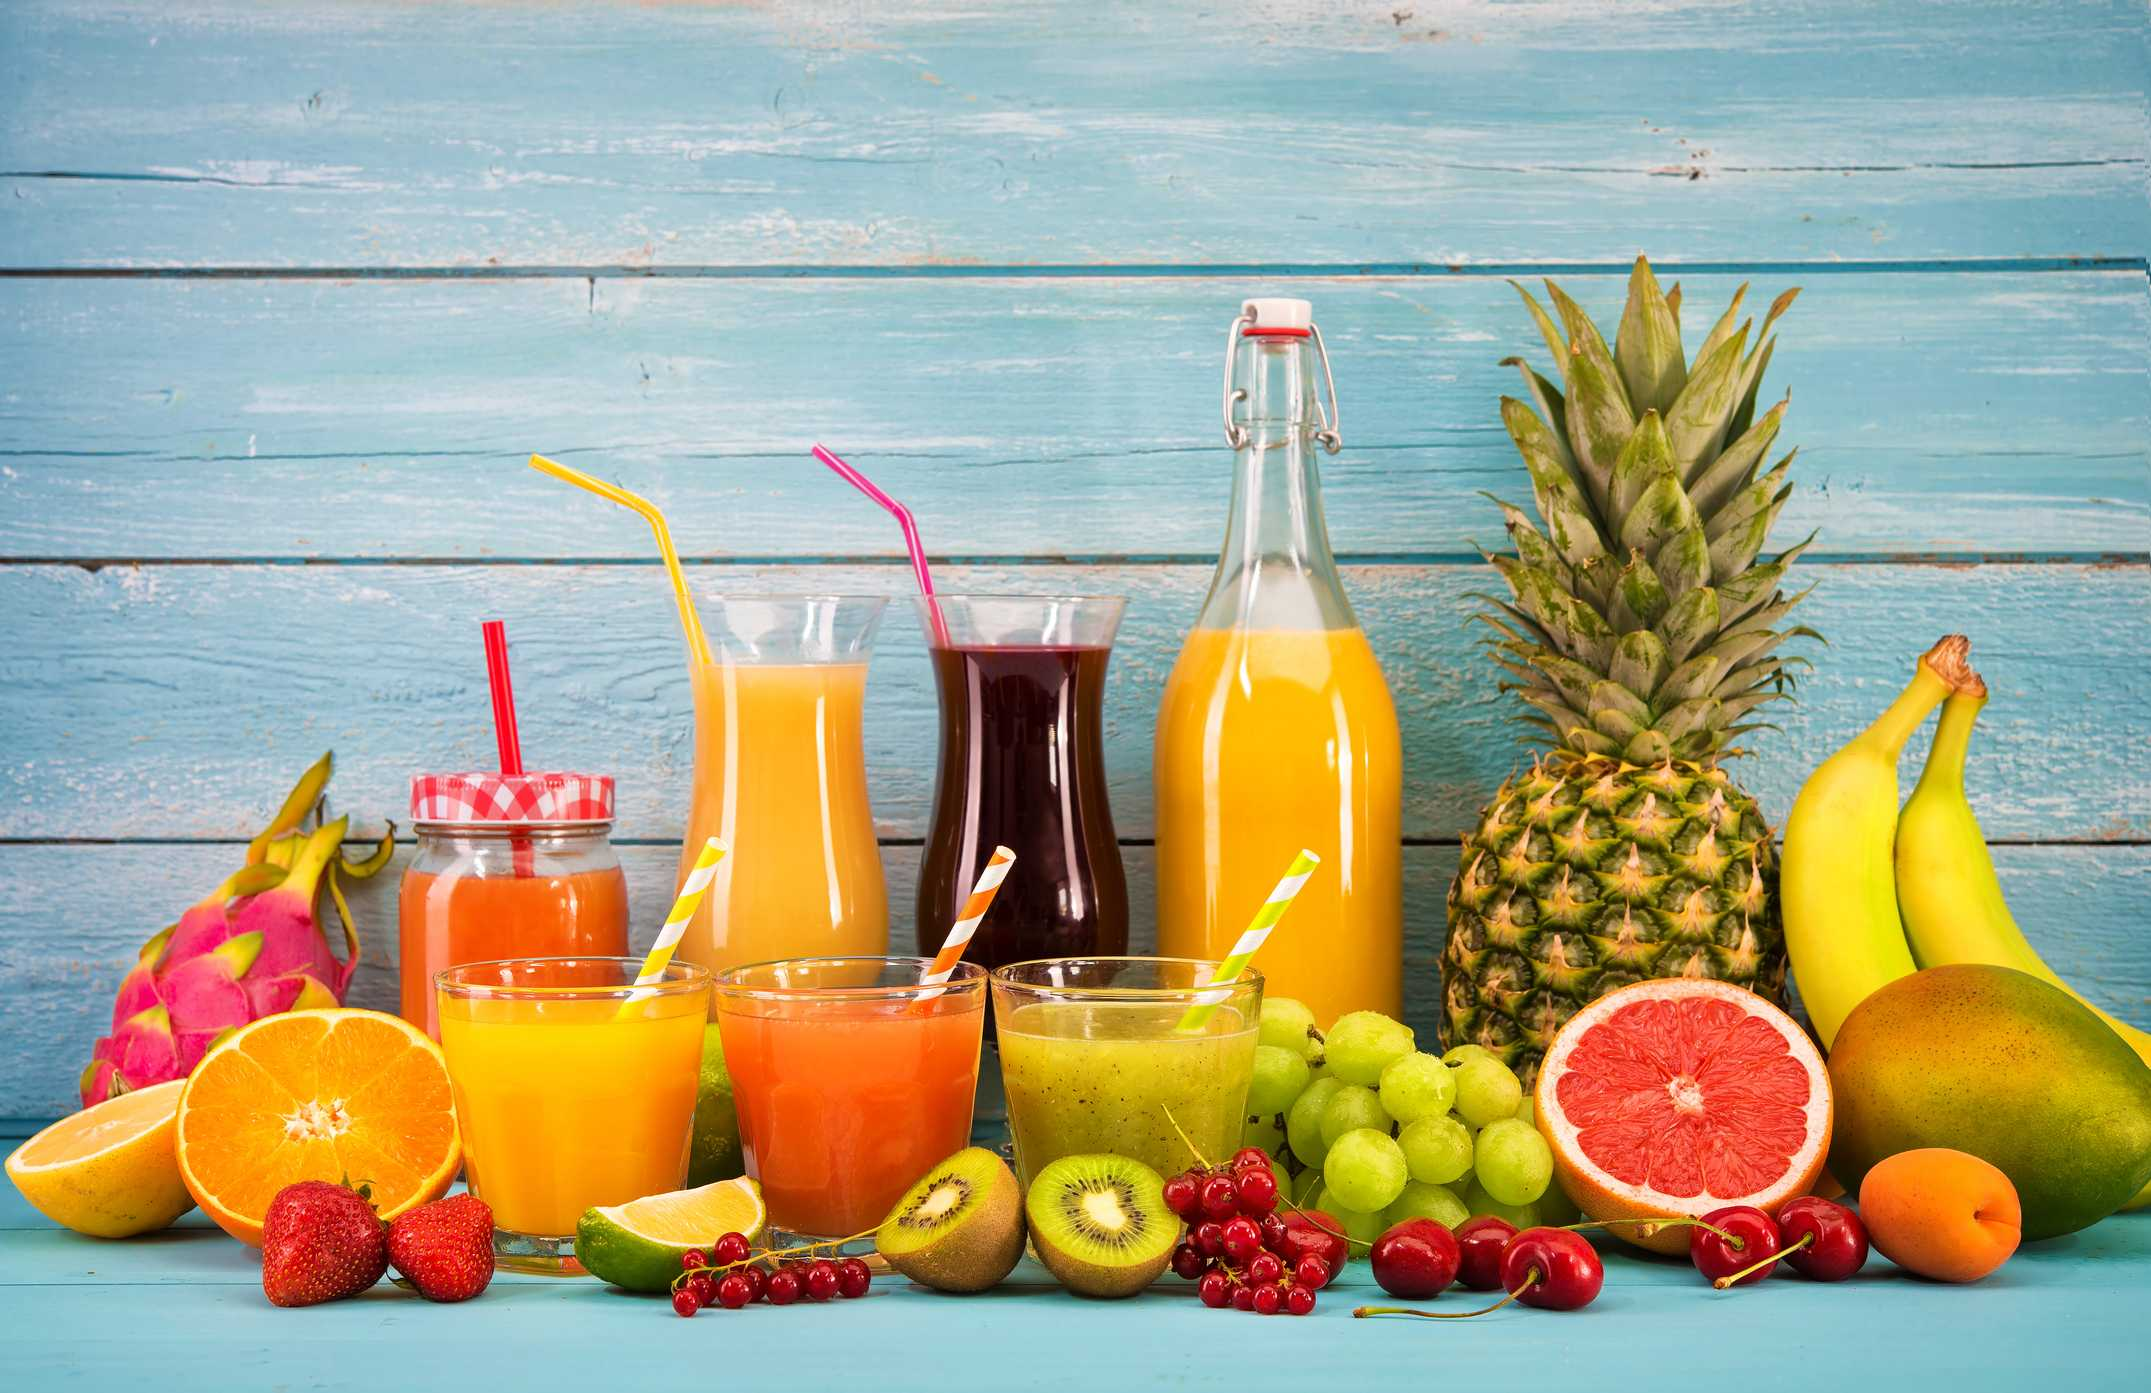 What Fruit Juice Can People With Diabetes Drink?